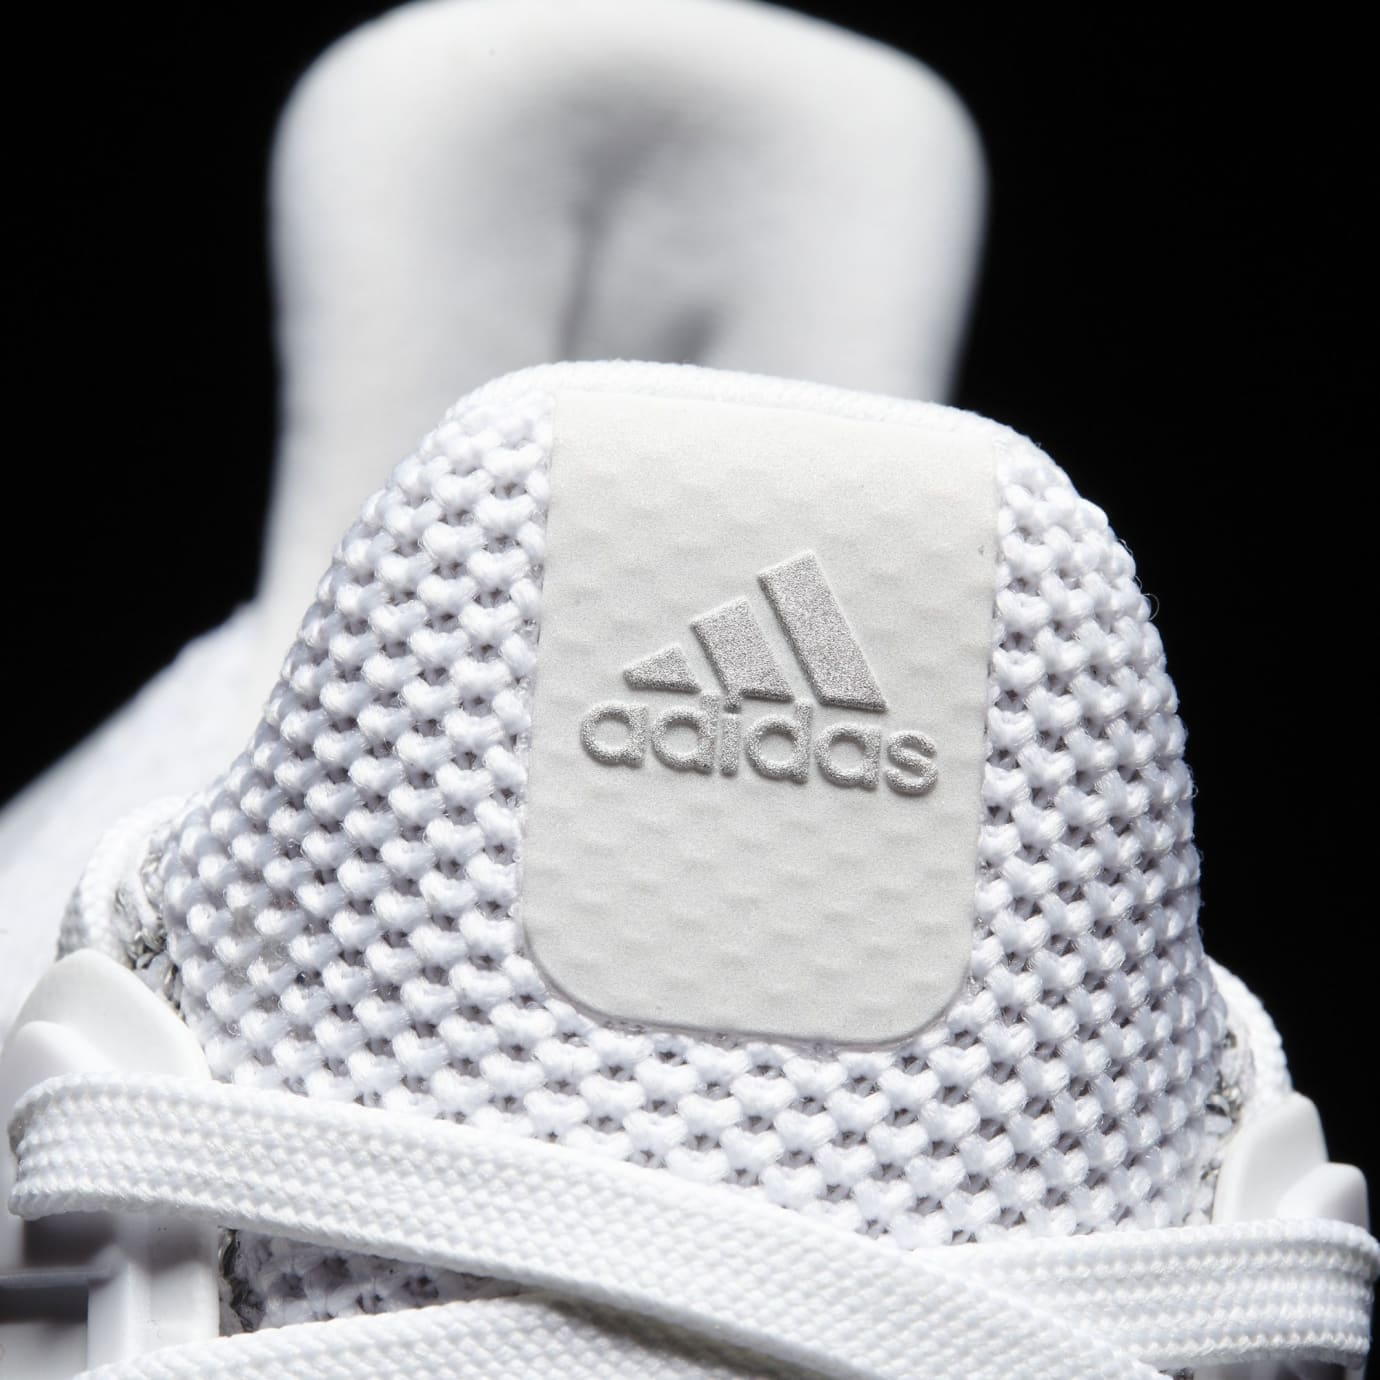 7c8c38b46e9e5 Image via Adidas Adidas Ultra Boost 2.0 White Reflective 2018 Release Date  BB3928 Tongue